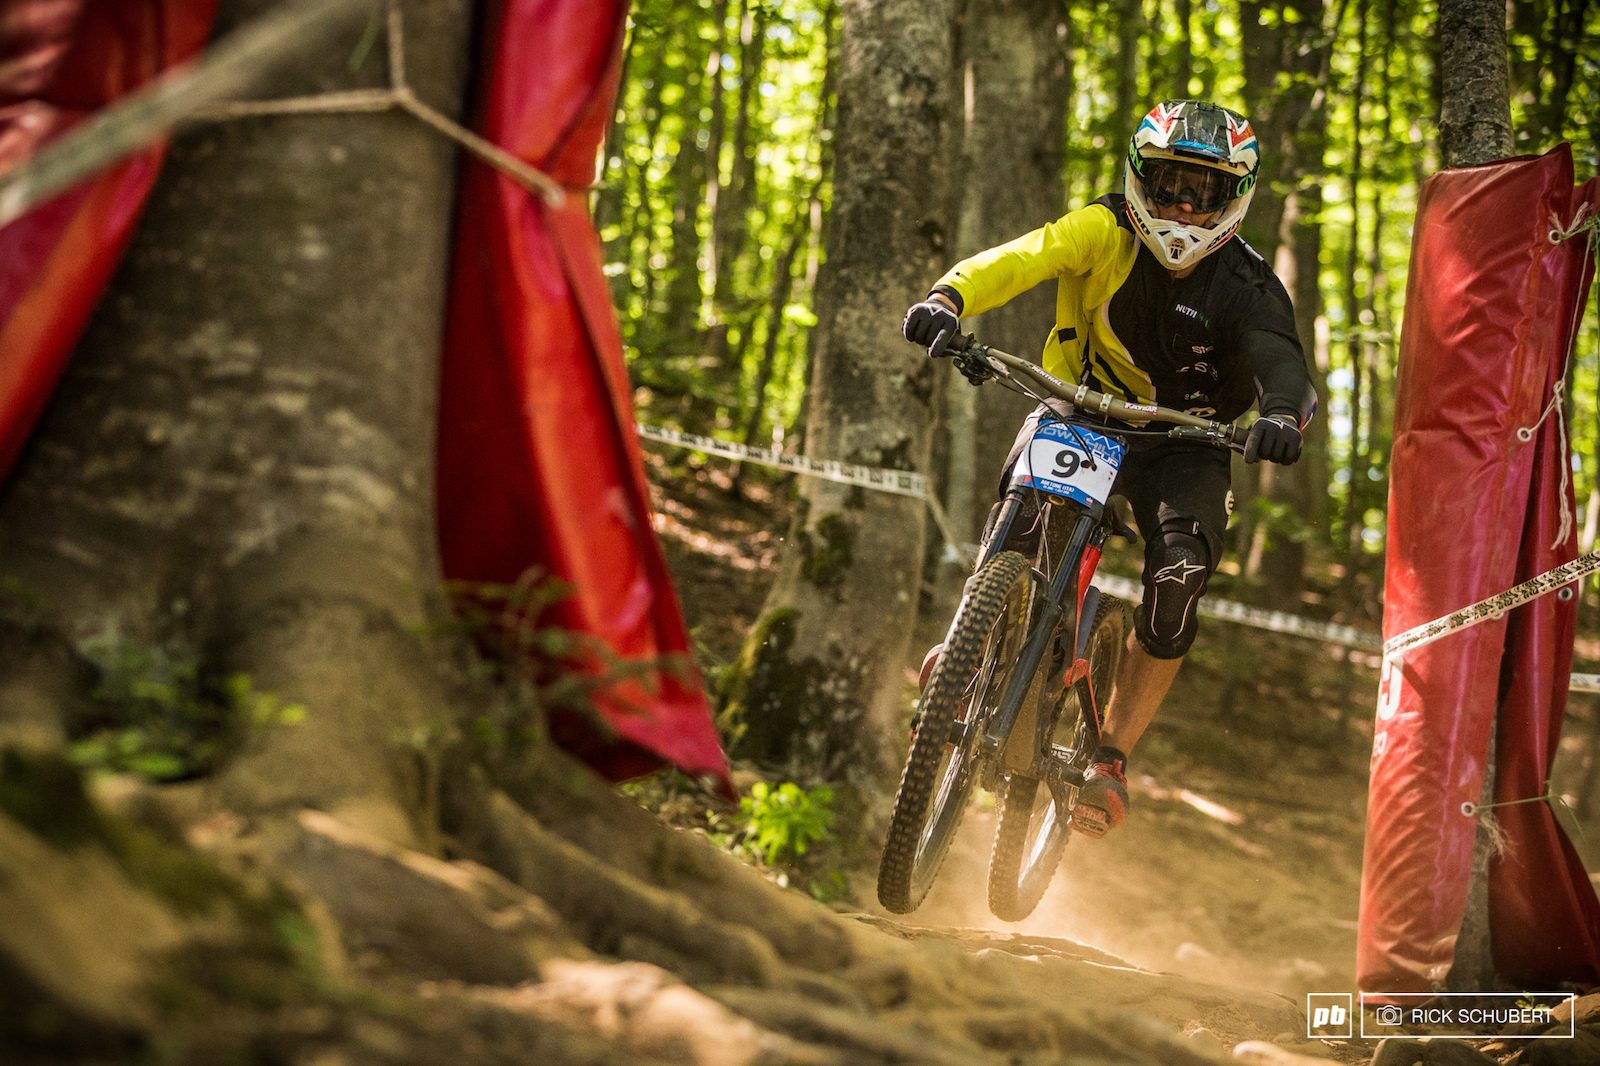 Luca Berginc is coming fresh of a second place finish in Kranjska Gora and carrys great momentum what put him into 4th